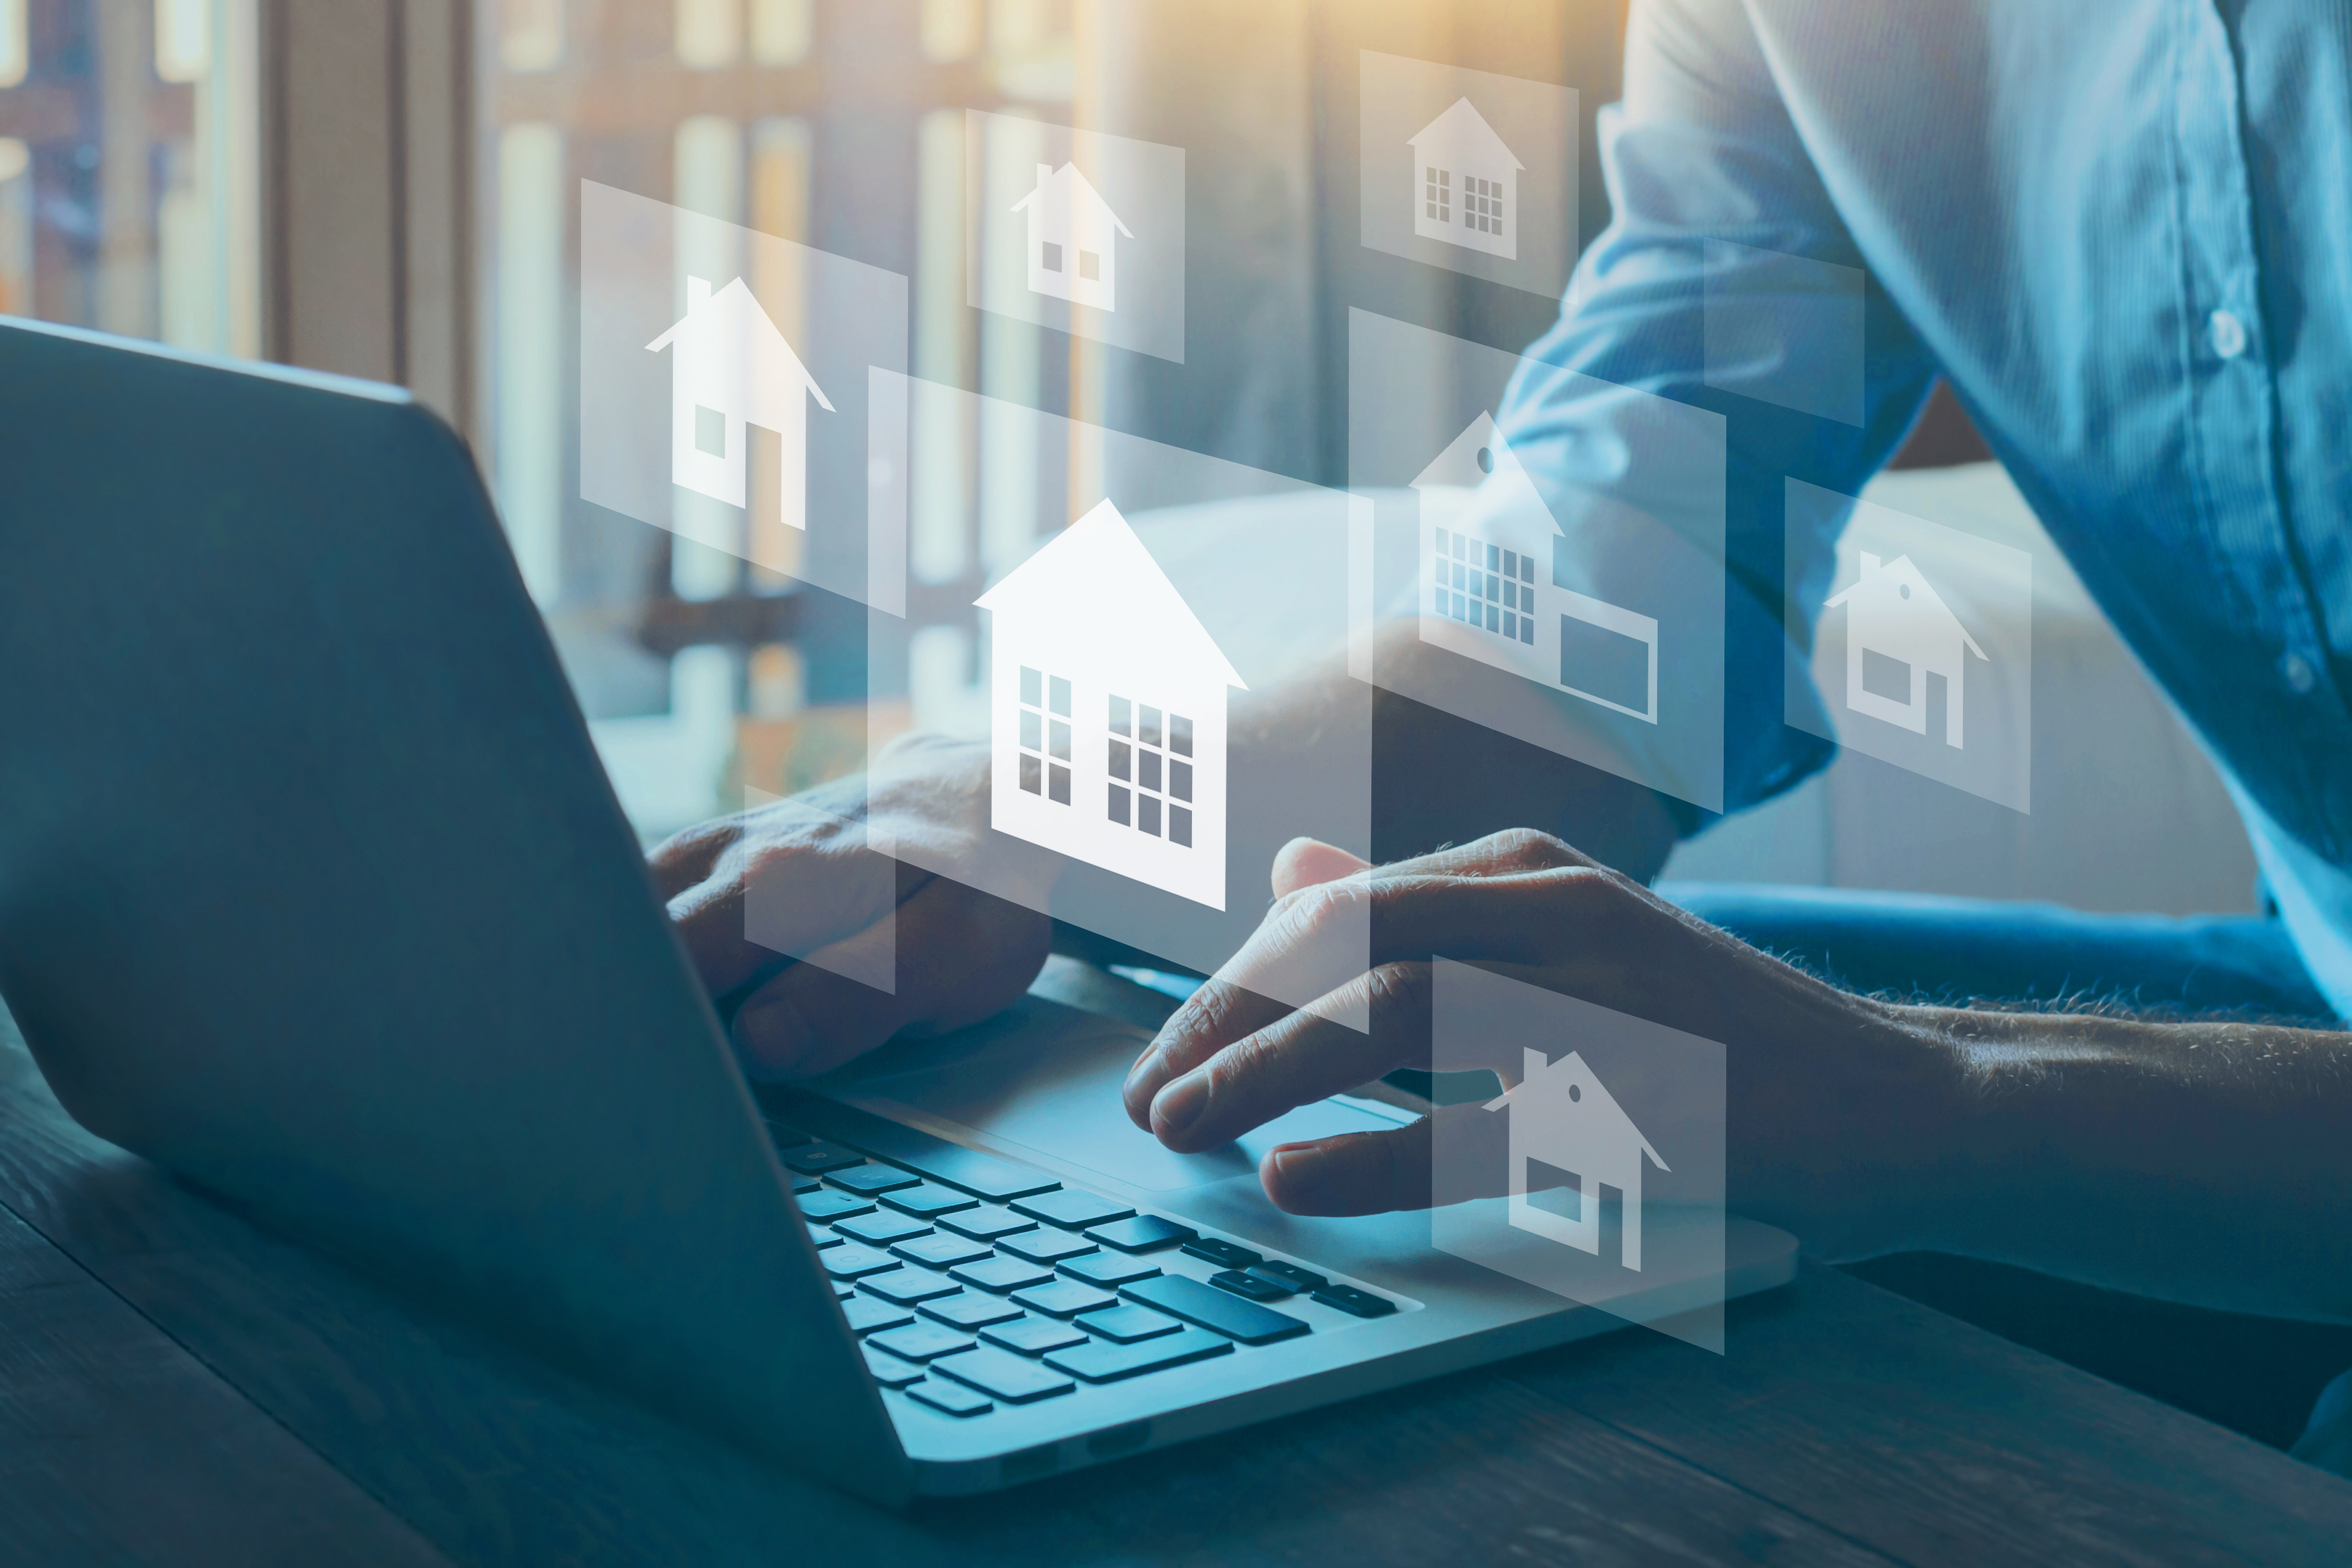 Digital lender Lower is about more than mortgage rates.